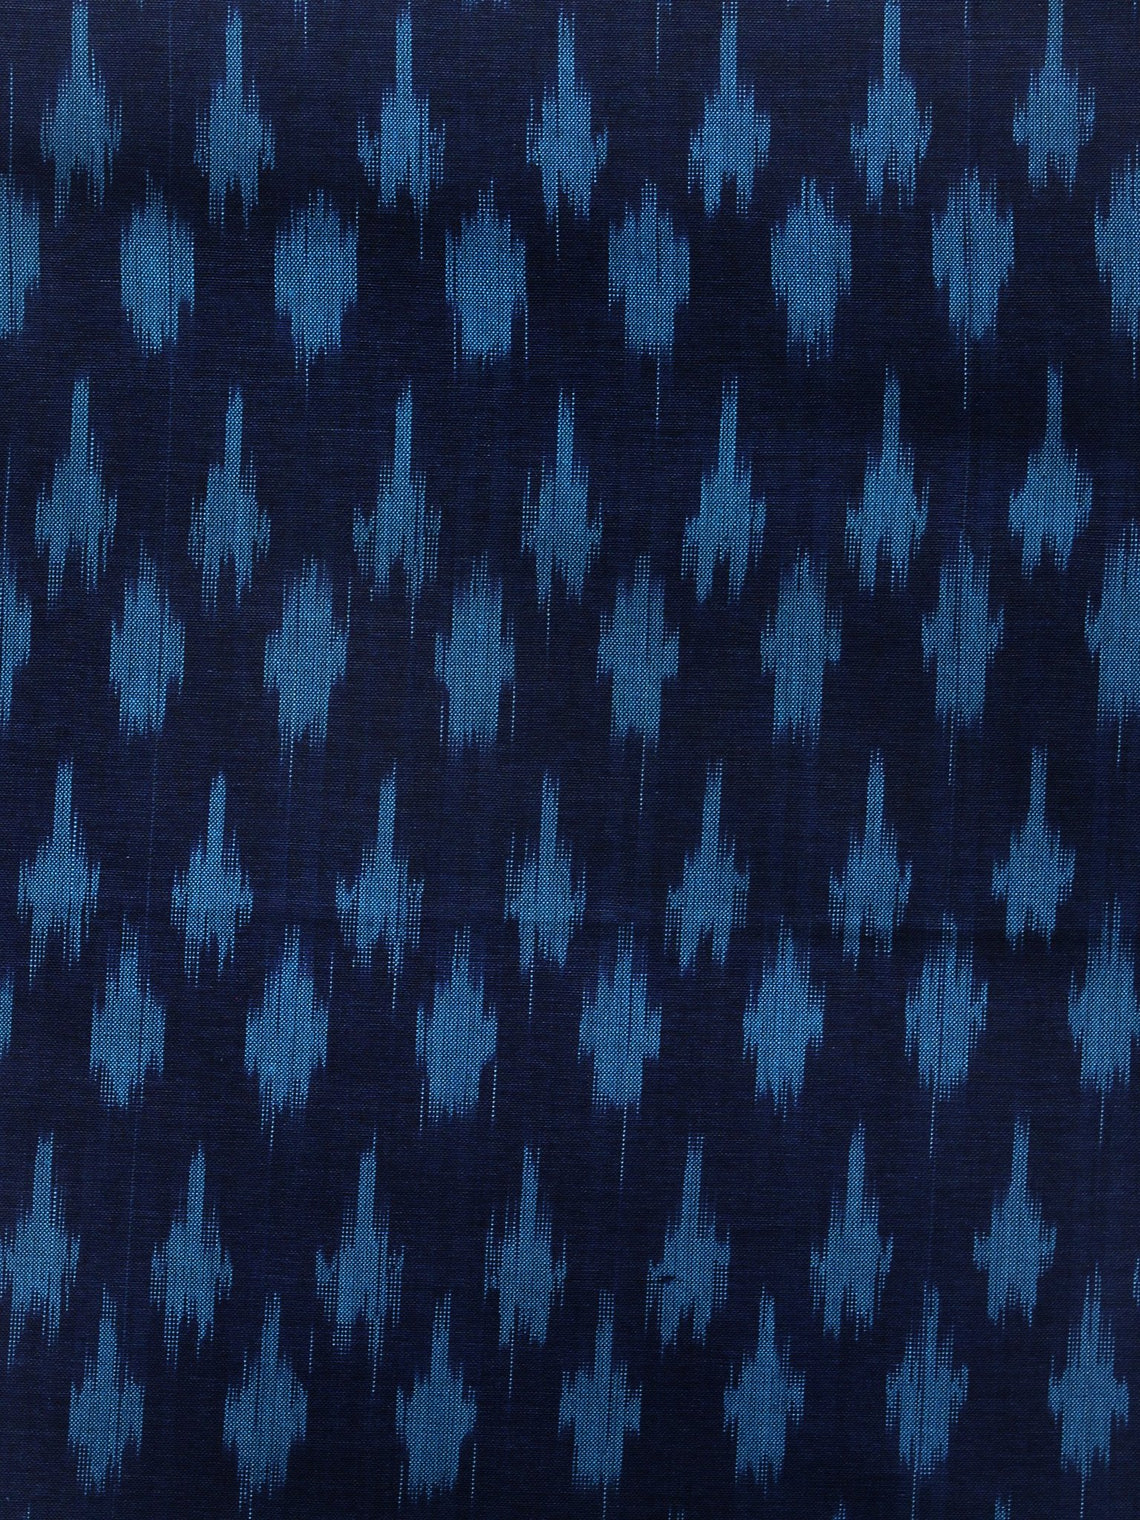 Indigo Turquoise Pochampally Hand Weaved Ikat Mercerised Fabric Per Meter - F003F1298